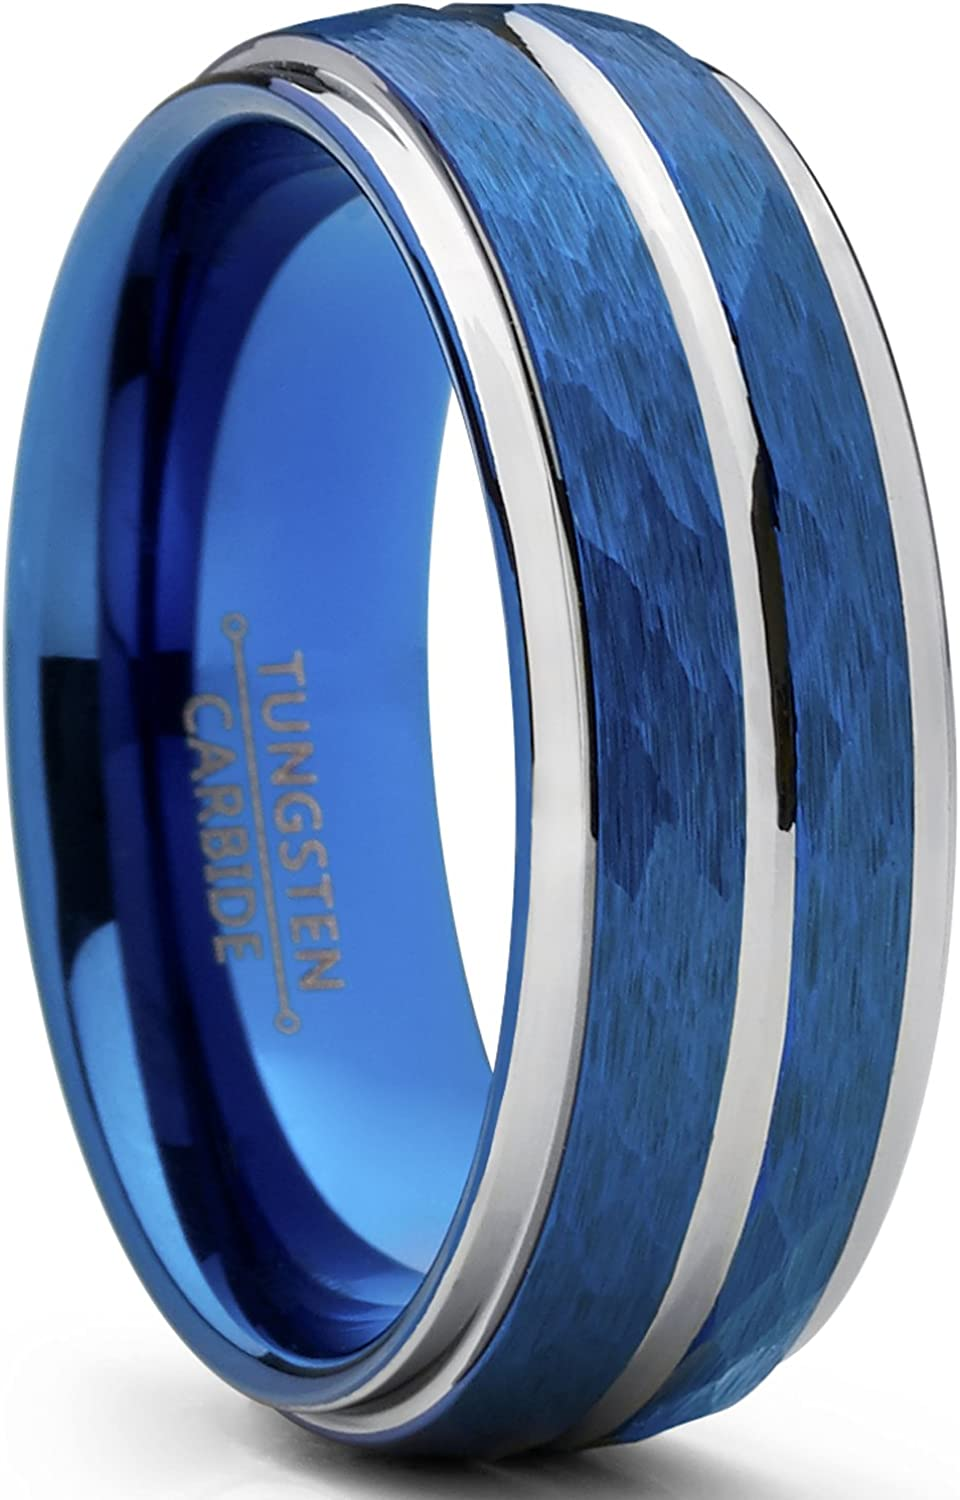 Metal Masters Co. Men's Two Tone Blue Hammered Brushed Tungsten Wedding Ring, 8mm Comfort Fit Band Sizes 7 to 15